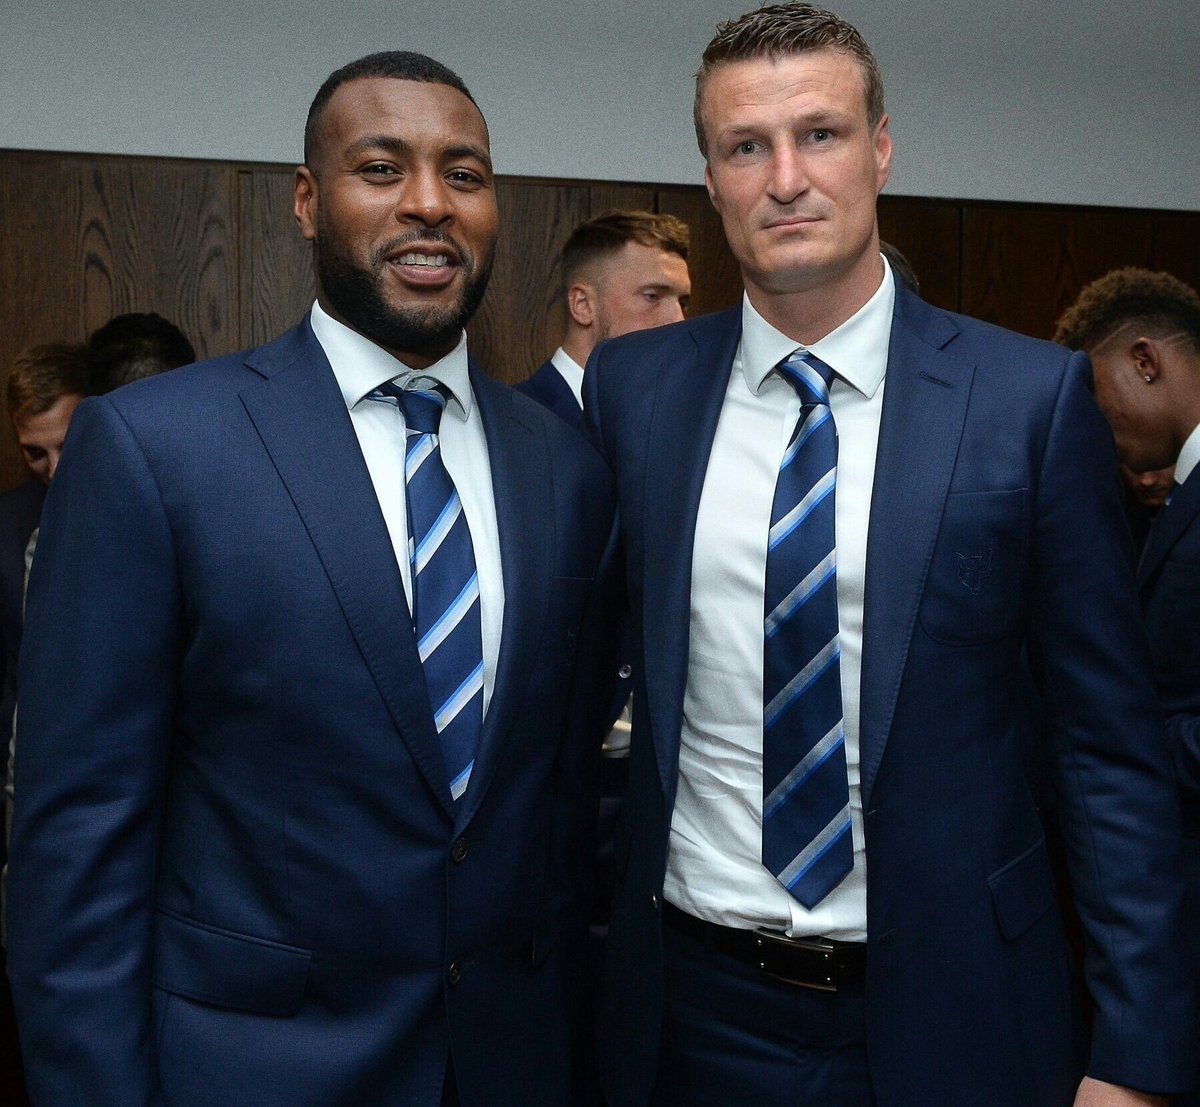 So, who partners Harry Maguire next season?   RT - Robert Huth Like - Wes Morgan  #lcfc #BlueArmy #Huth #Morgan #Maguire<br>http://pic.twitter.com/0NaDwagVWk